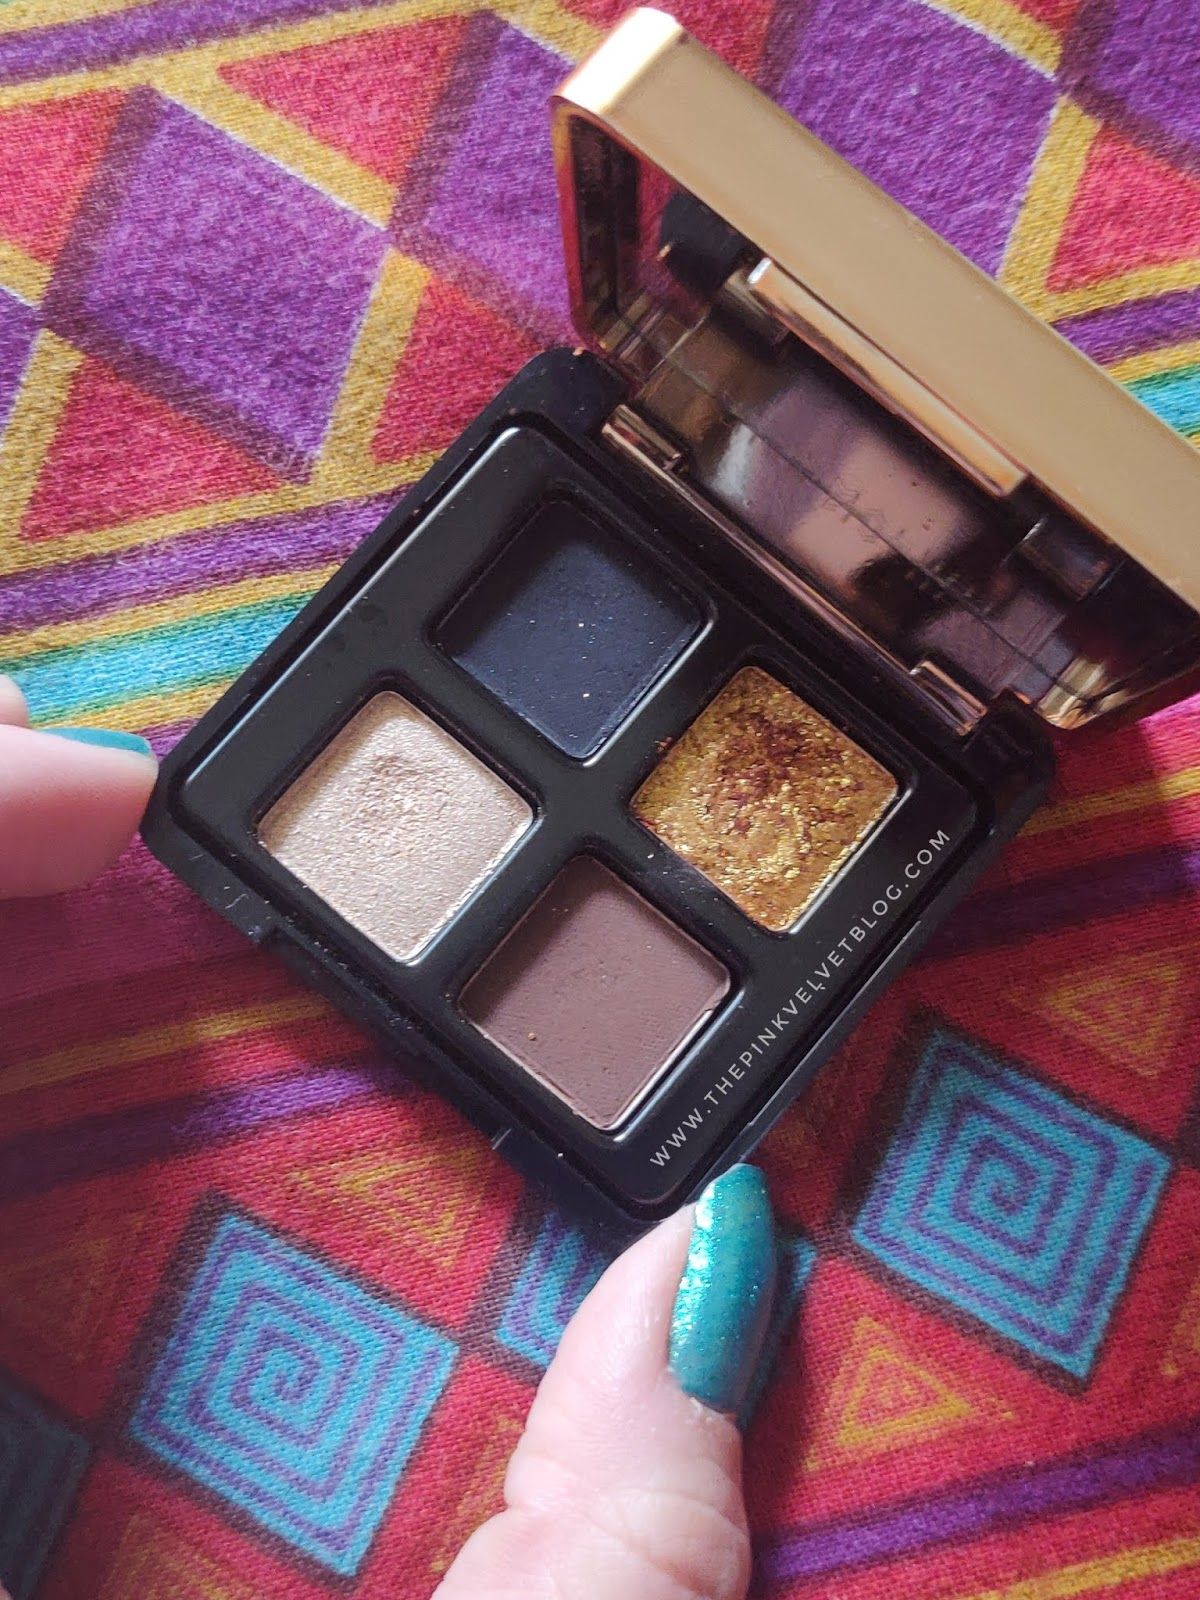 Top 5 MyGlamm Products I Love - Review and Swatches - Manish Malhotra Eyeshadow After 8